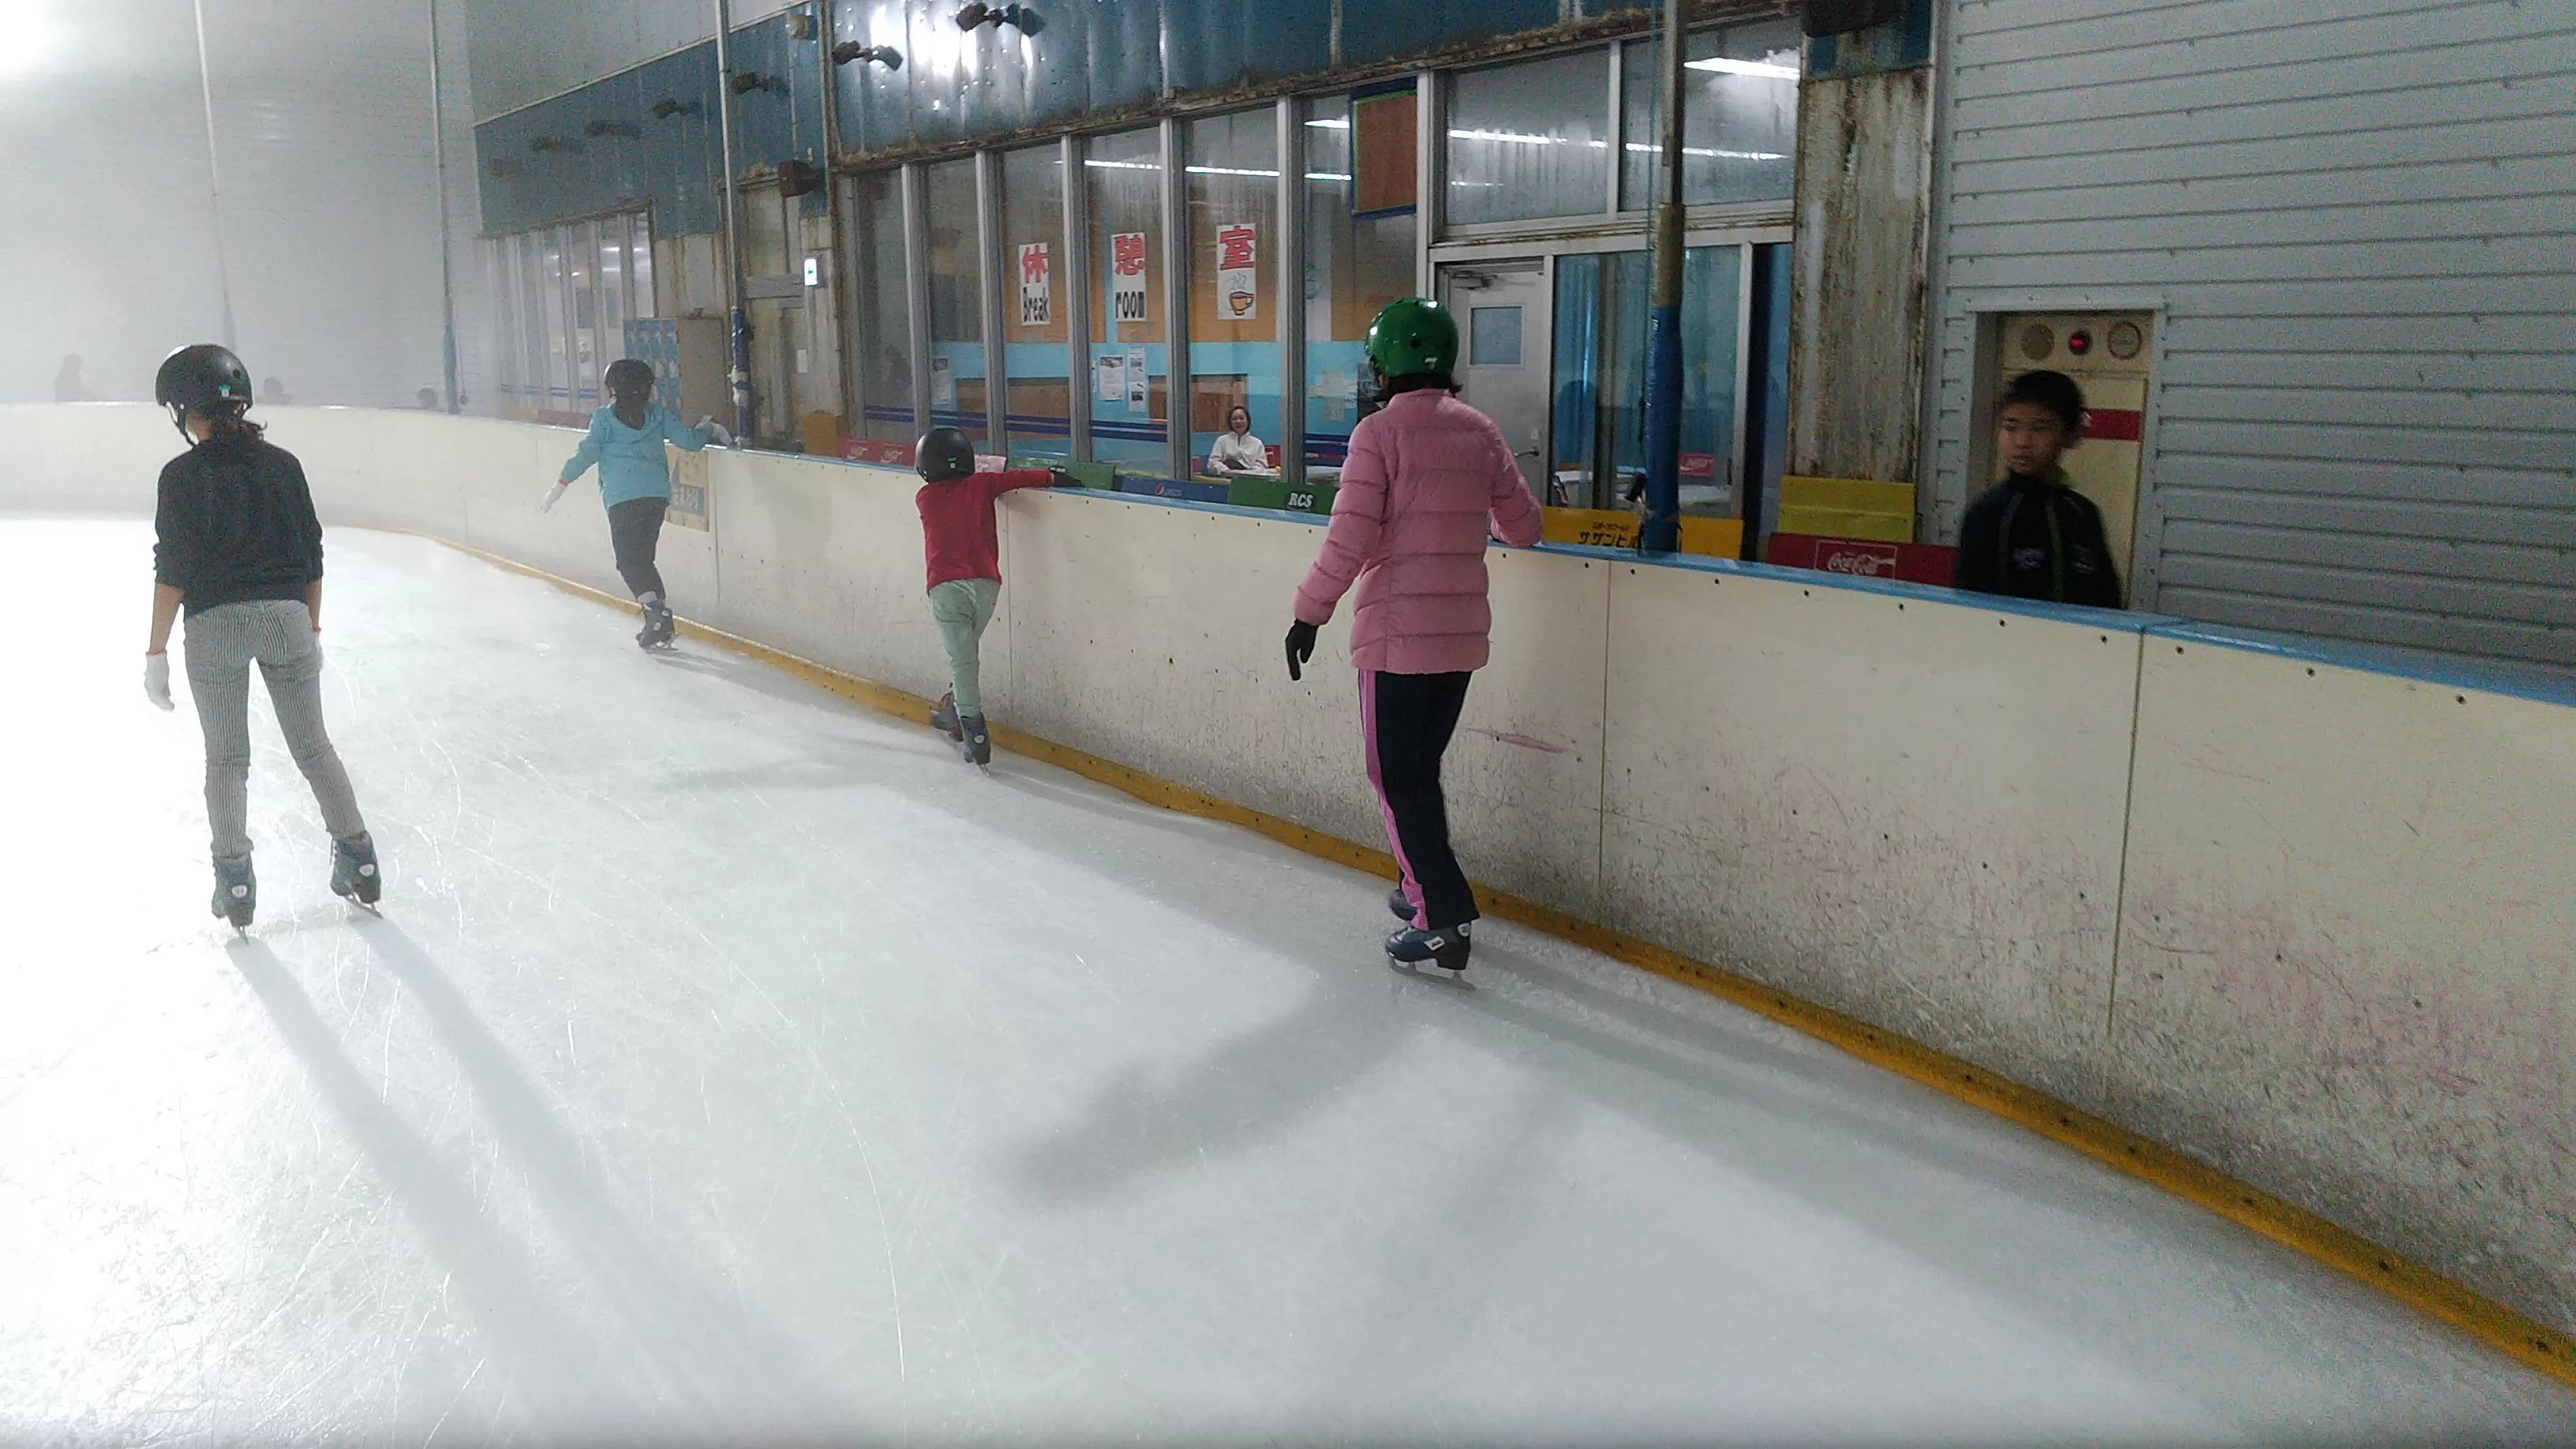 My children wear ice skates and have a first experience with ice skating